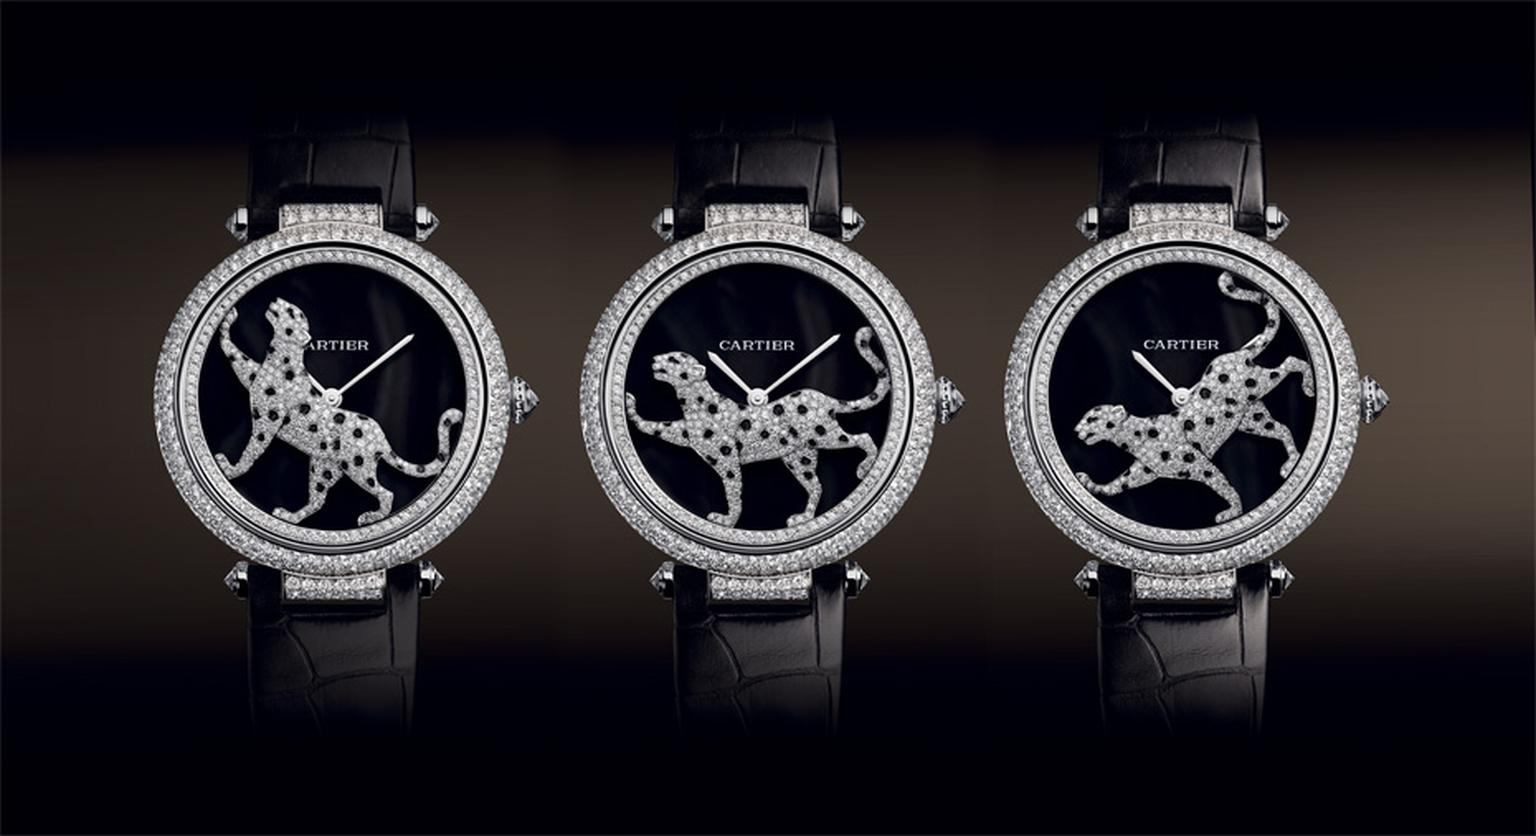 Cartier. Masse Secre`te panther de´cor watch, Calibre 9603. White gold, diamonds, deep purple mother of pearl and sapphire. Black semi-matte alligator skin. POA. MAIN PIC